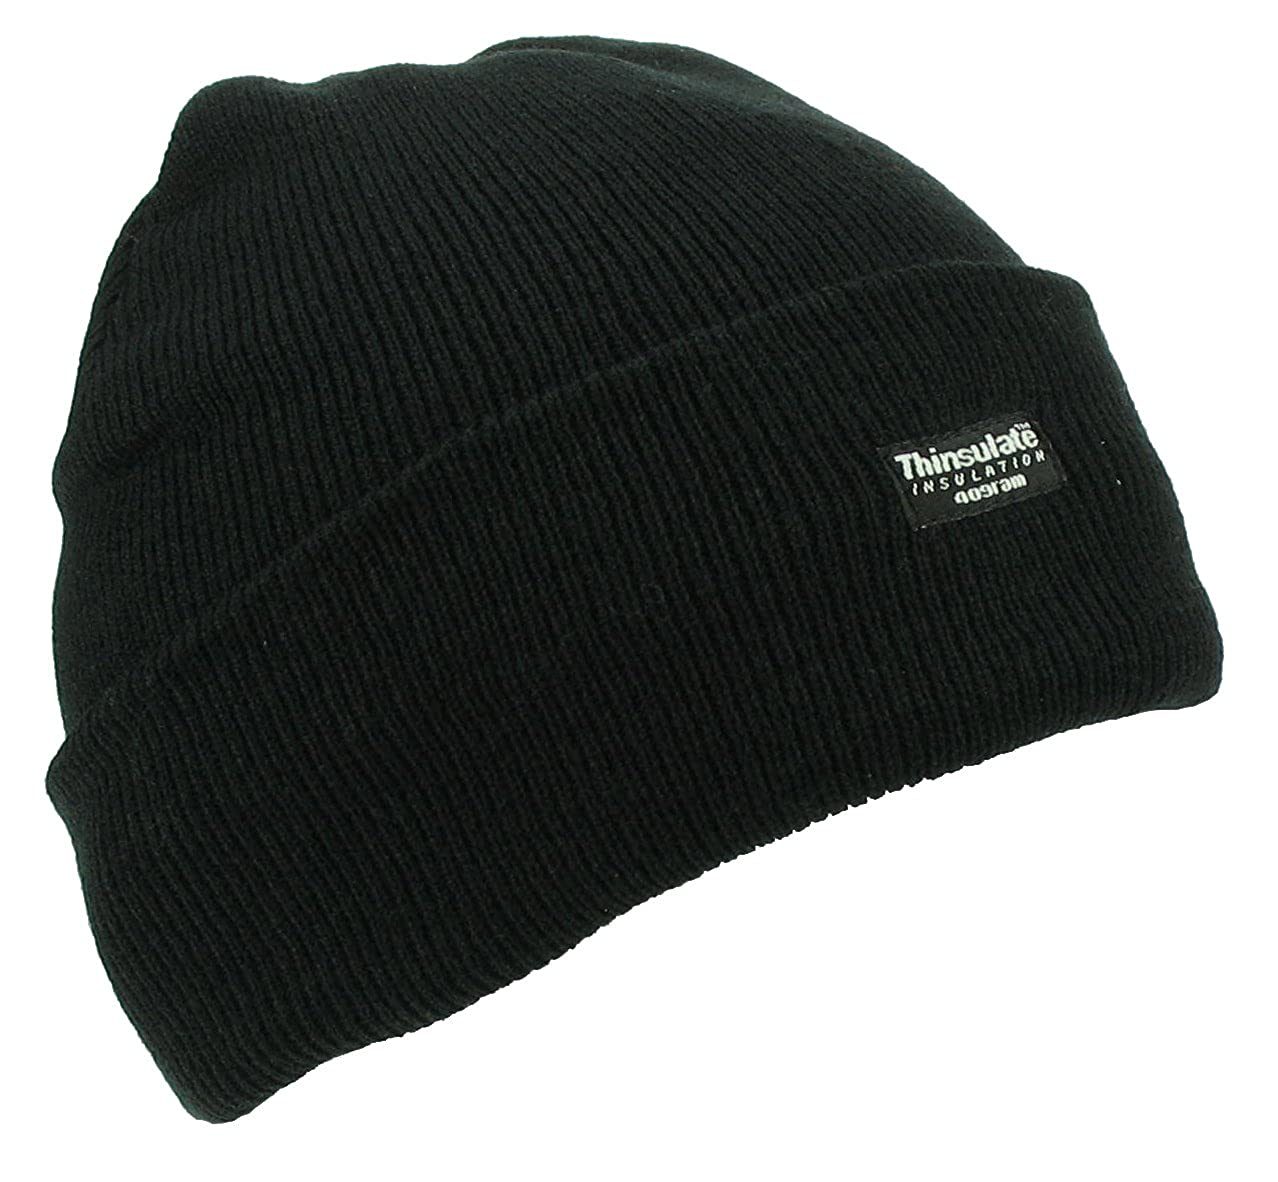 Mens Thinsulate Thermal Winter Hat